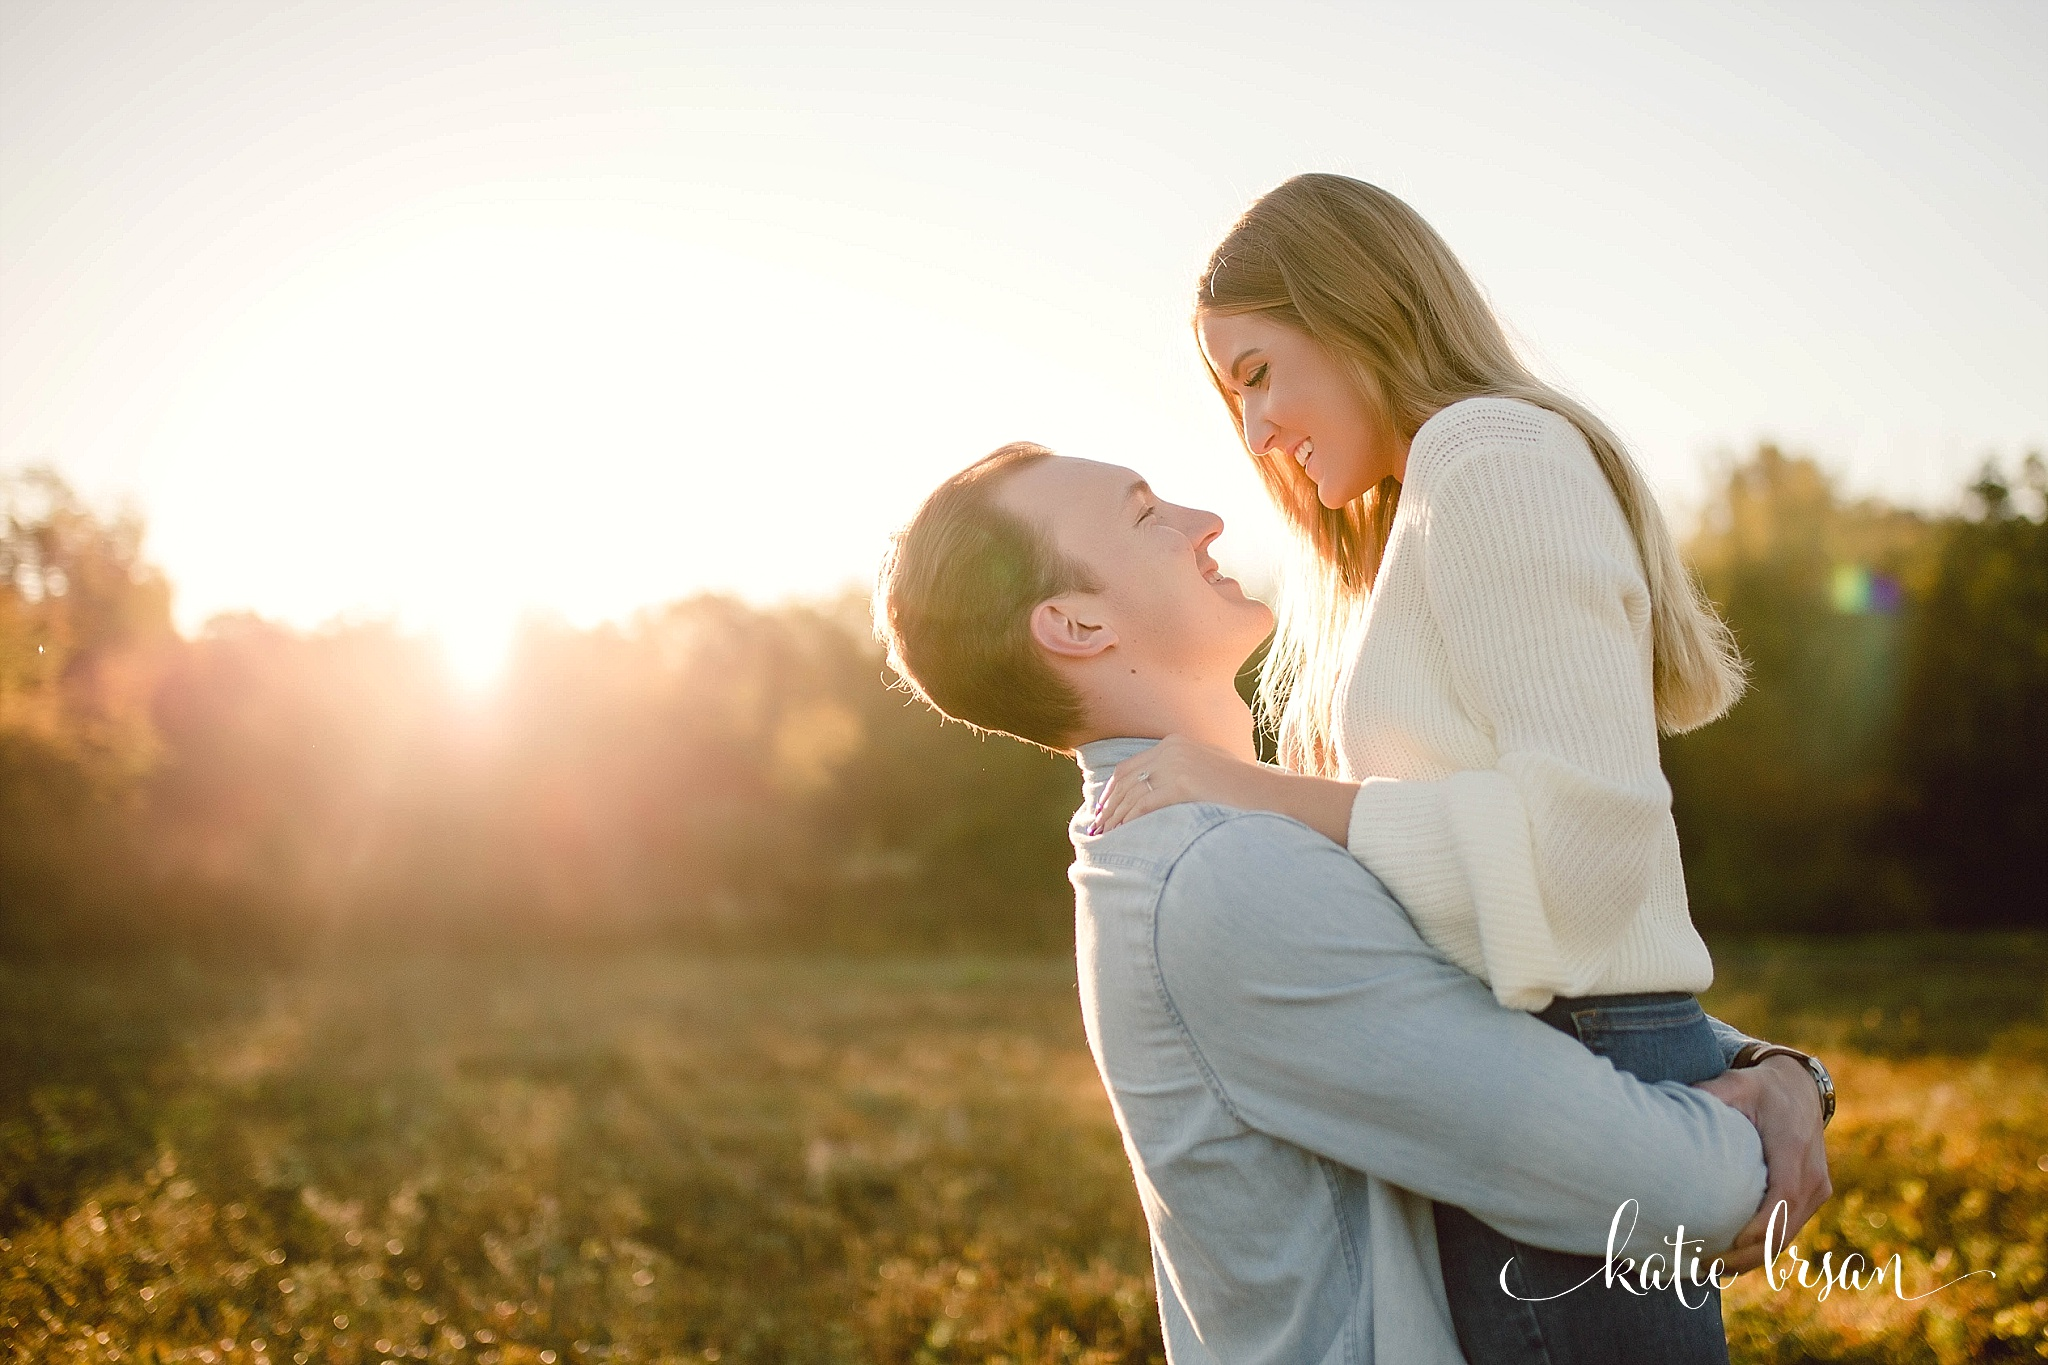 Mokena_EngagementSession_ChicagoWeddingPhotographer_1185.jpg